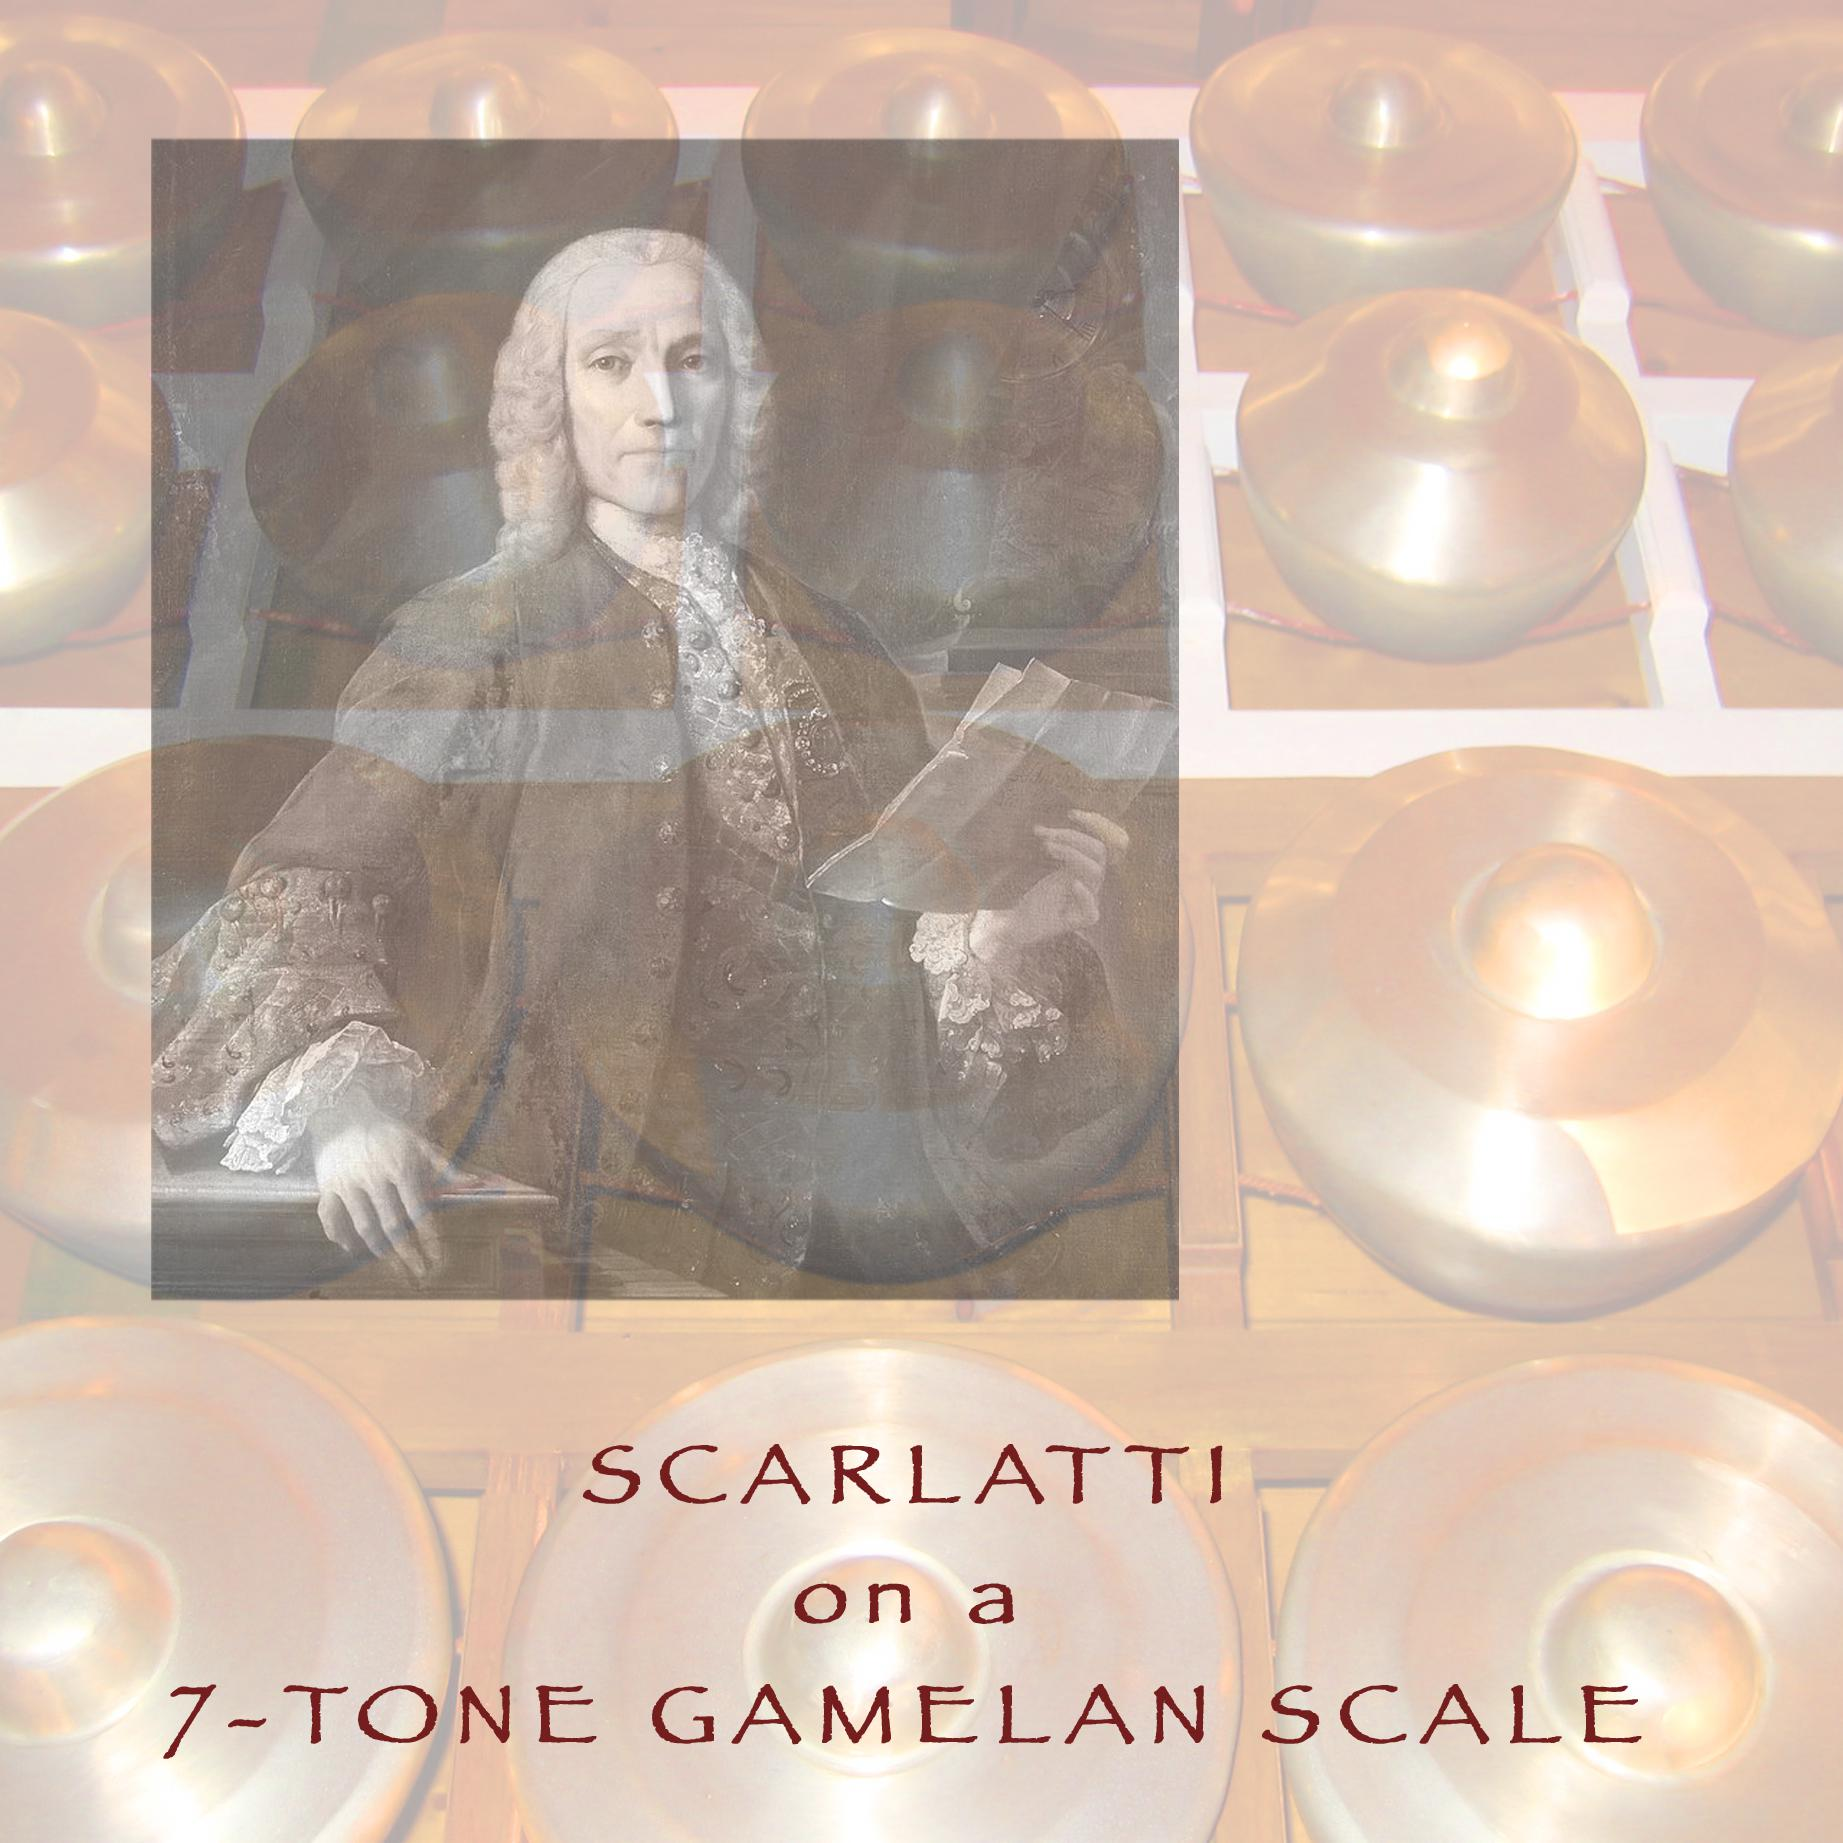 Scarlatti on a 7-Tone Gamelan Scale